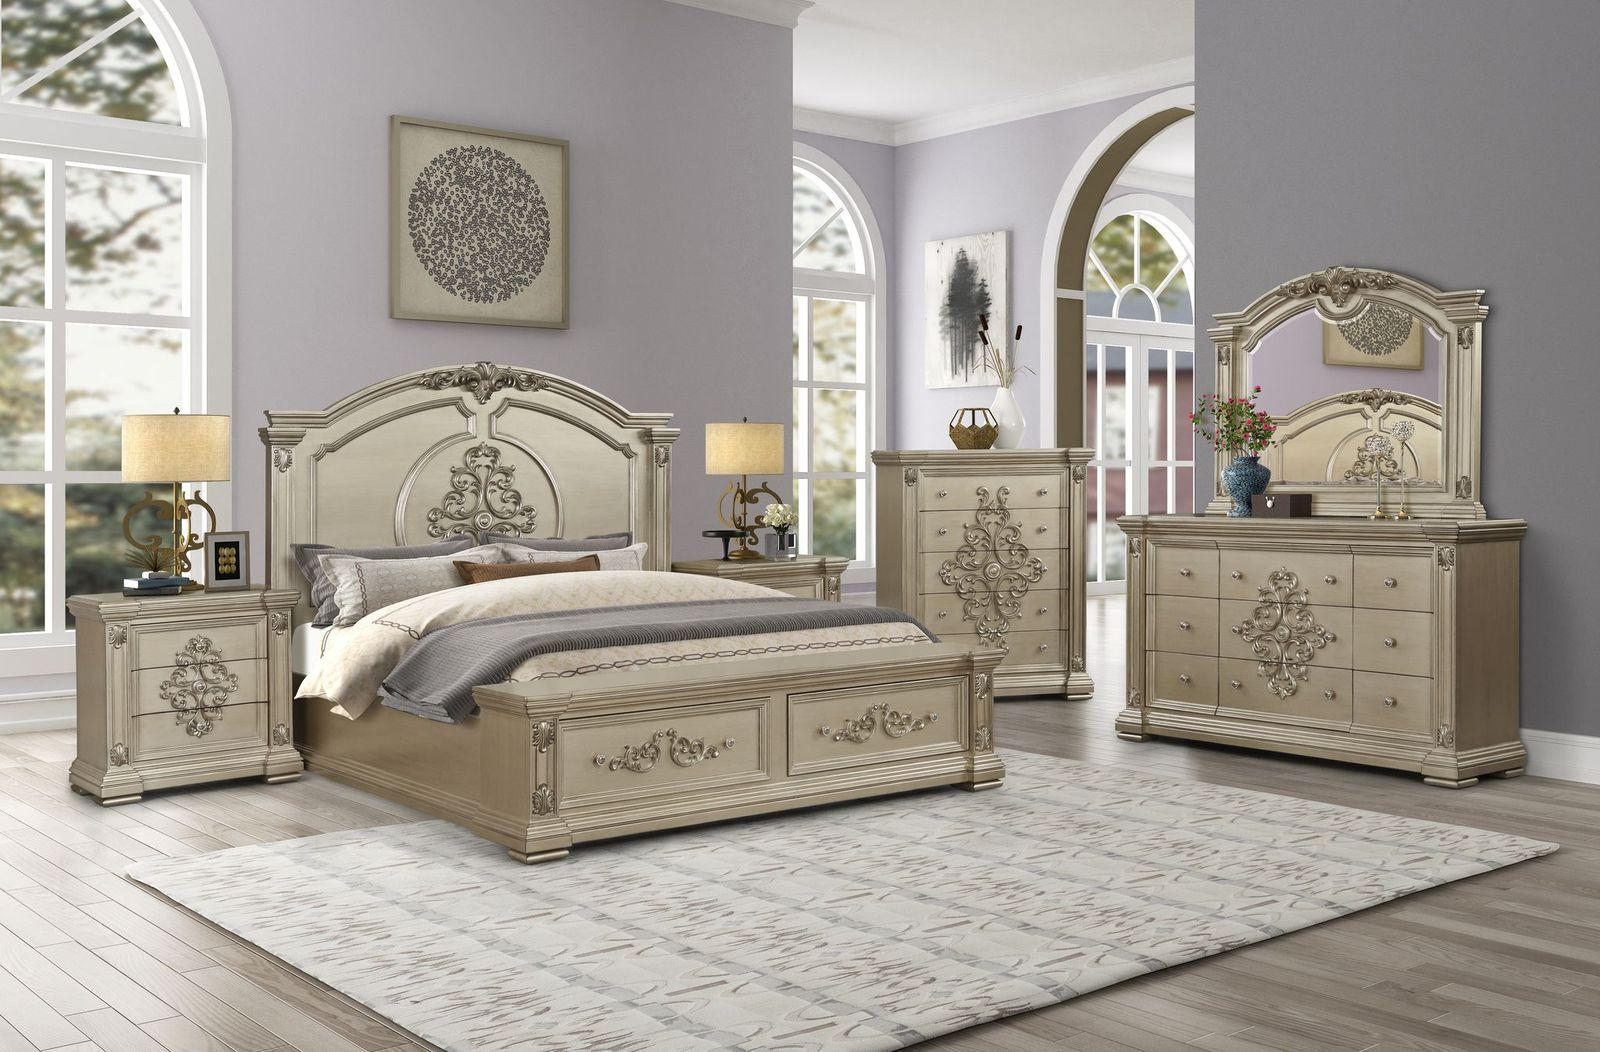 Transitional Beige  and Wood Queen Panel Bedroom Set 5 pcs Alicia by Cosmos Furniture